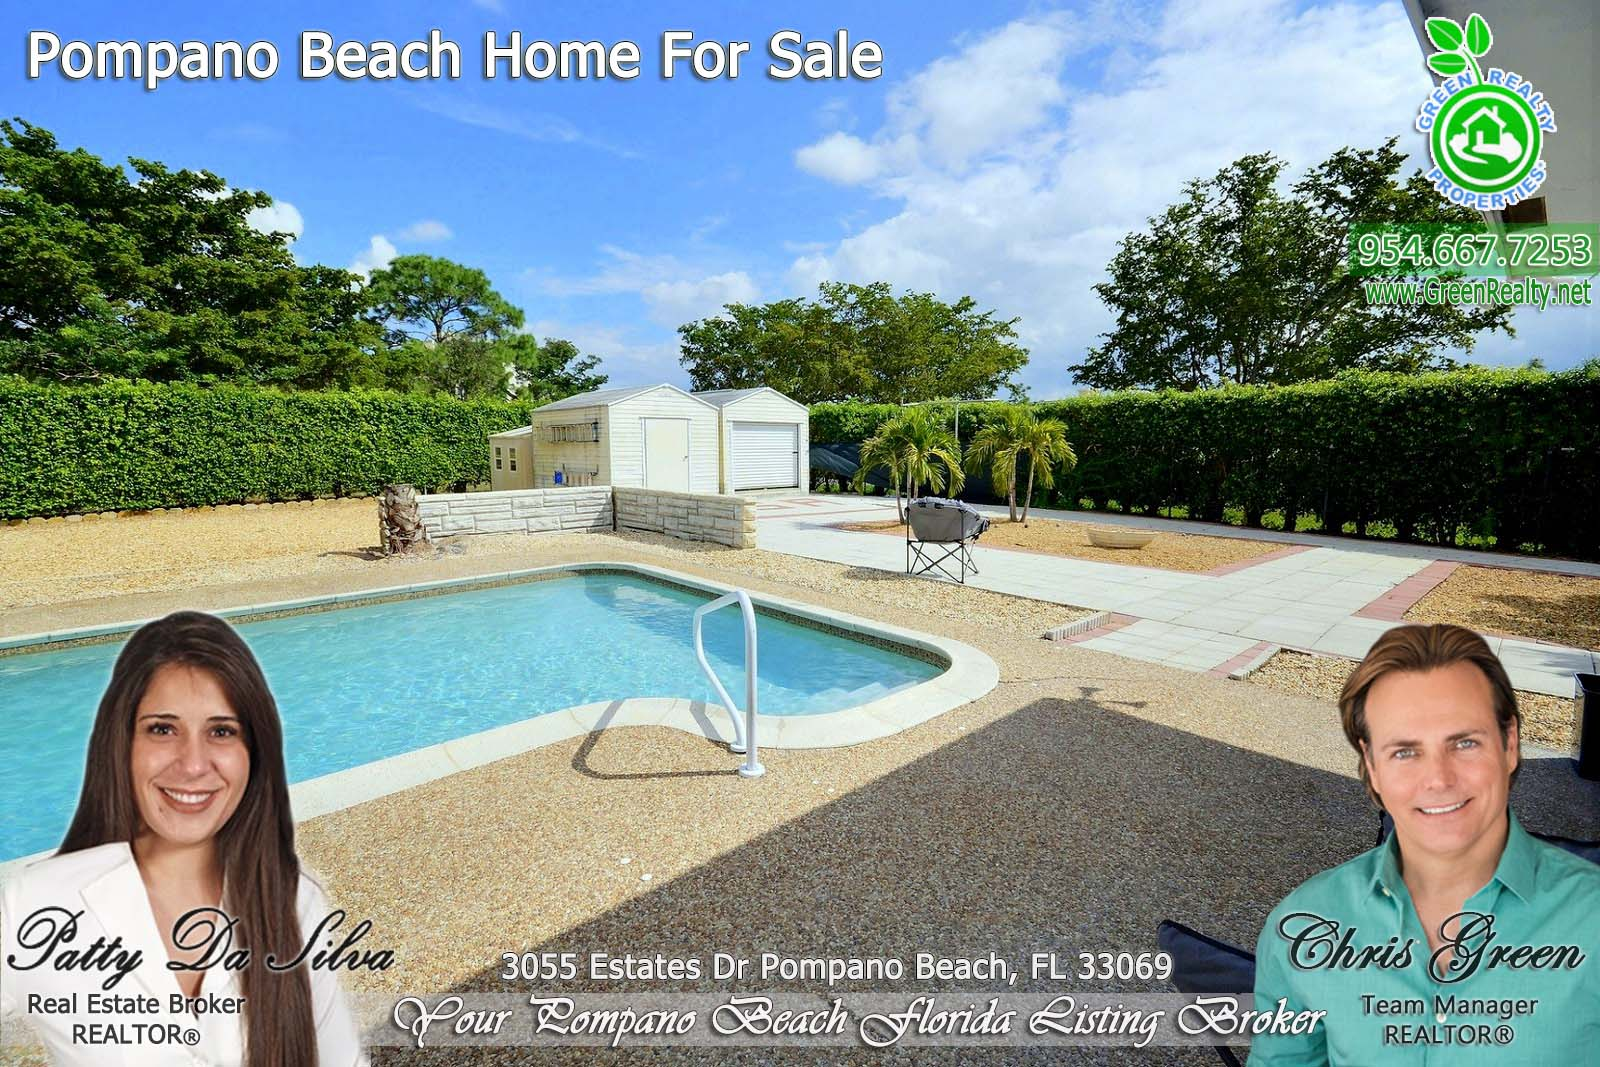 33 Pompano Beach Homes For Sale (1)